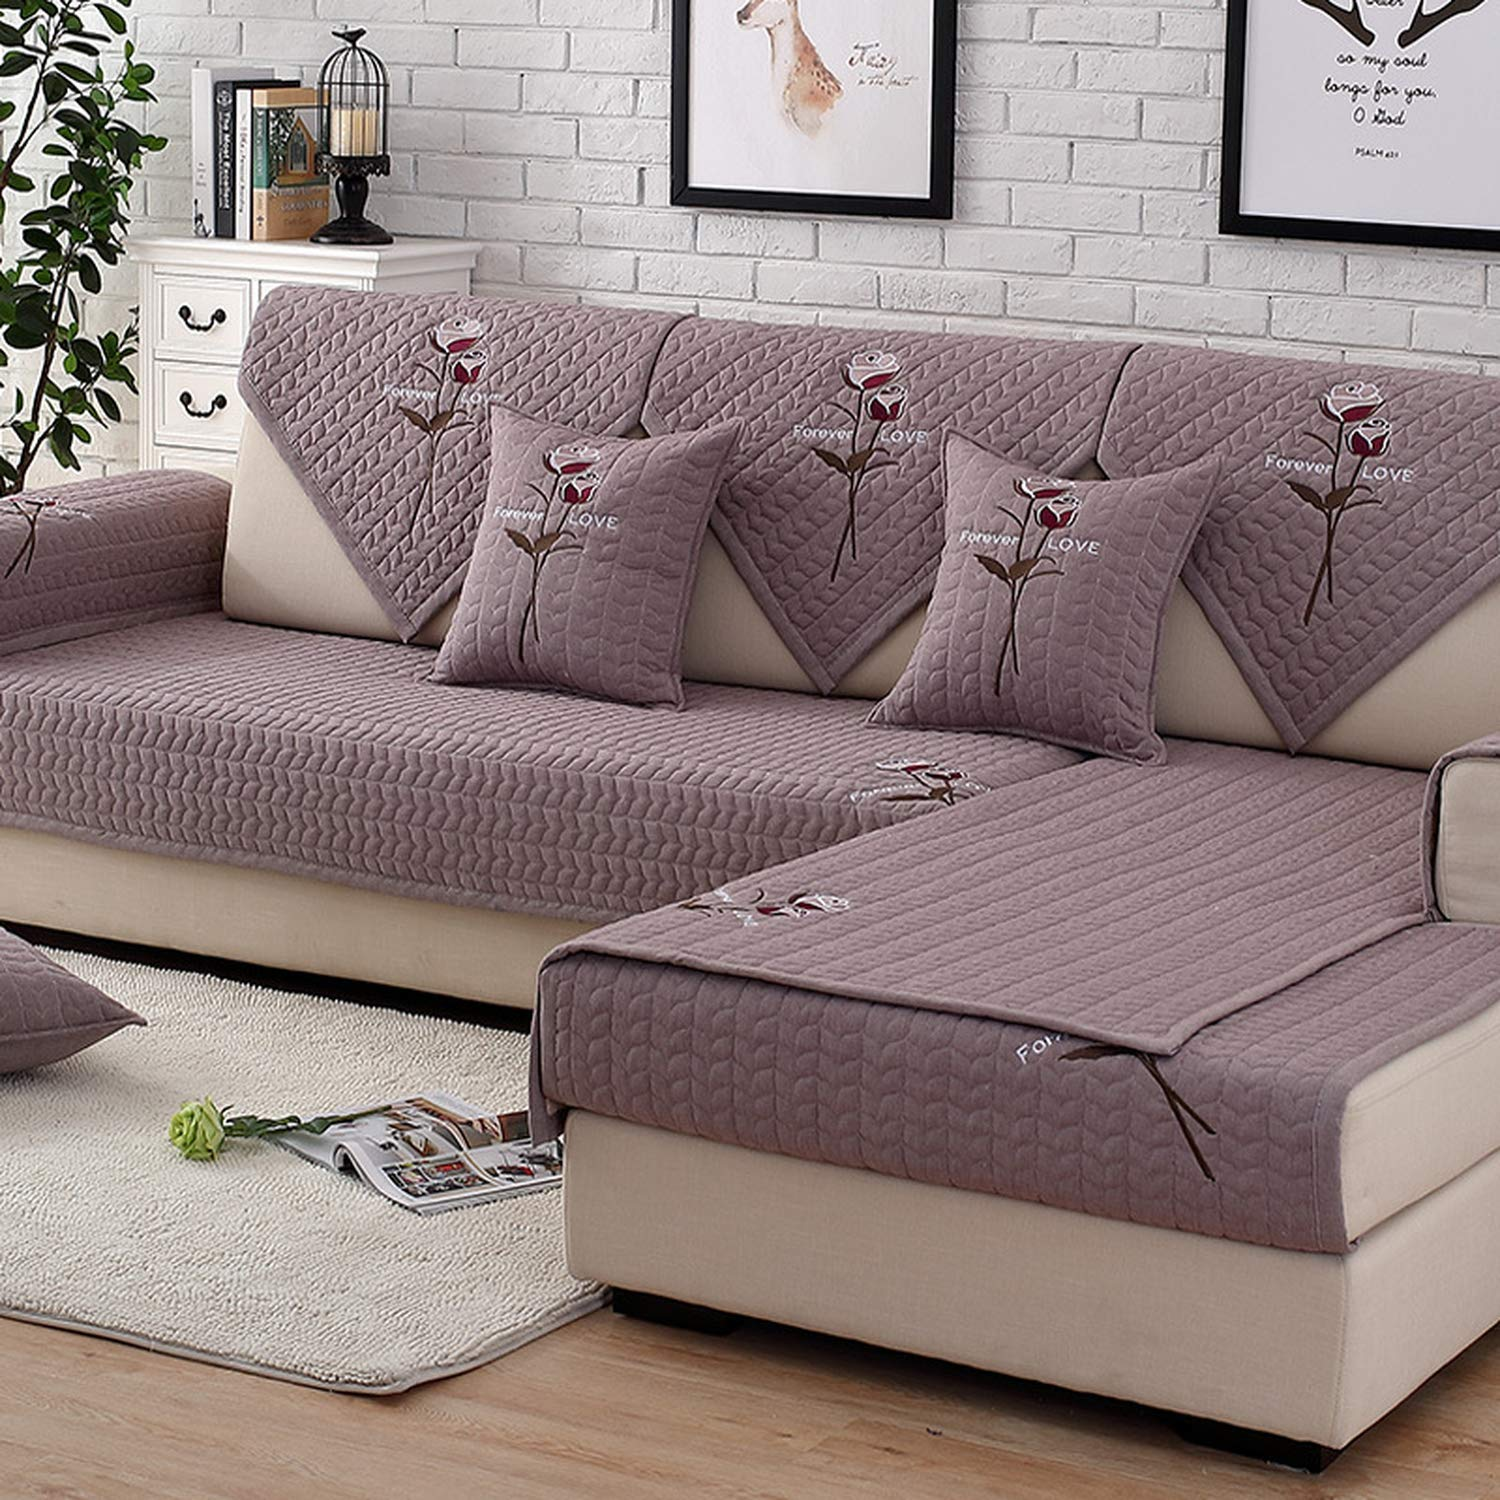 Amazon.com: Solid Color Sofa Covers Couch Cover Embroidered ...